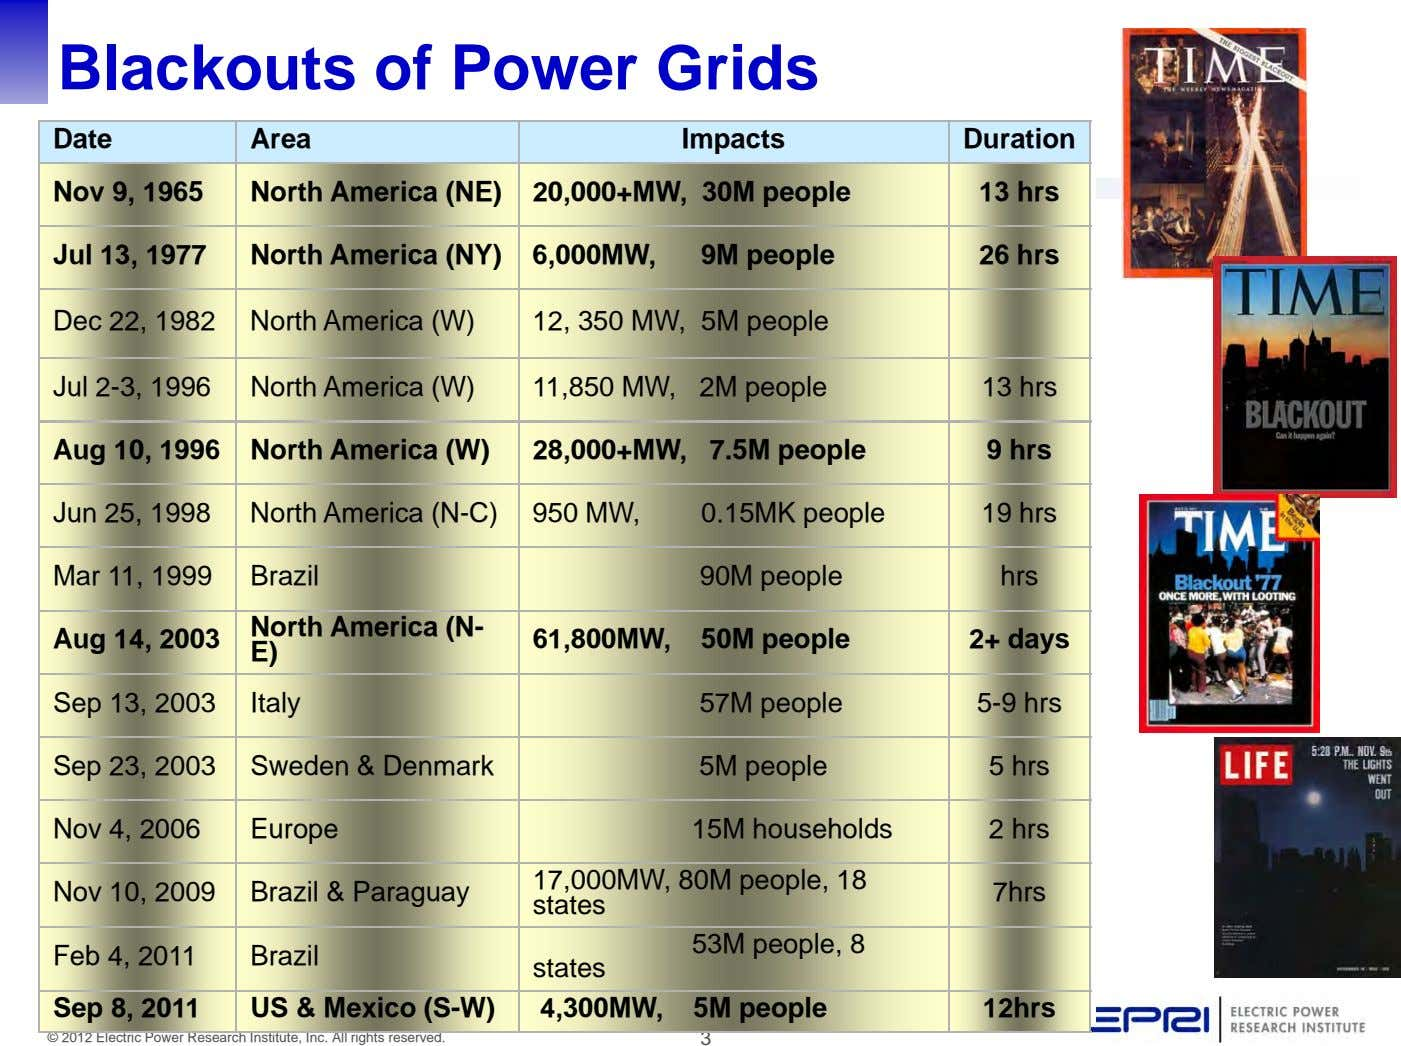 Blackouts of Power Grids Date Area Impacts Duration Nov 9, 1965 North America (NE) 20,000+MW,